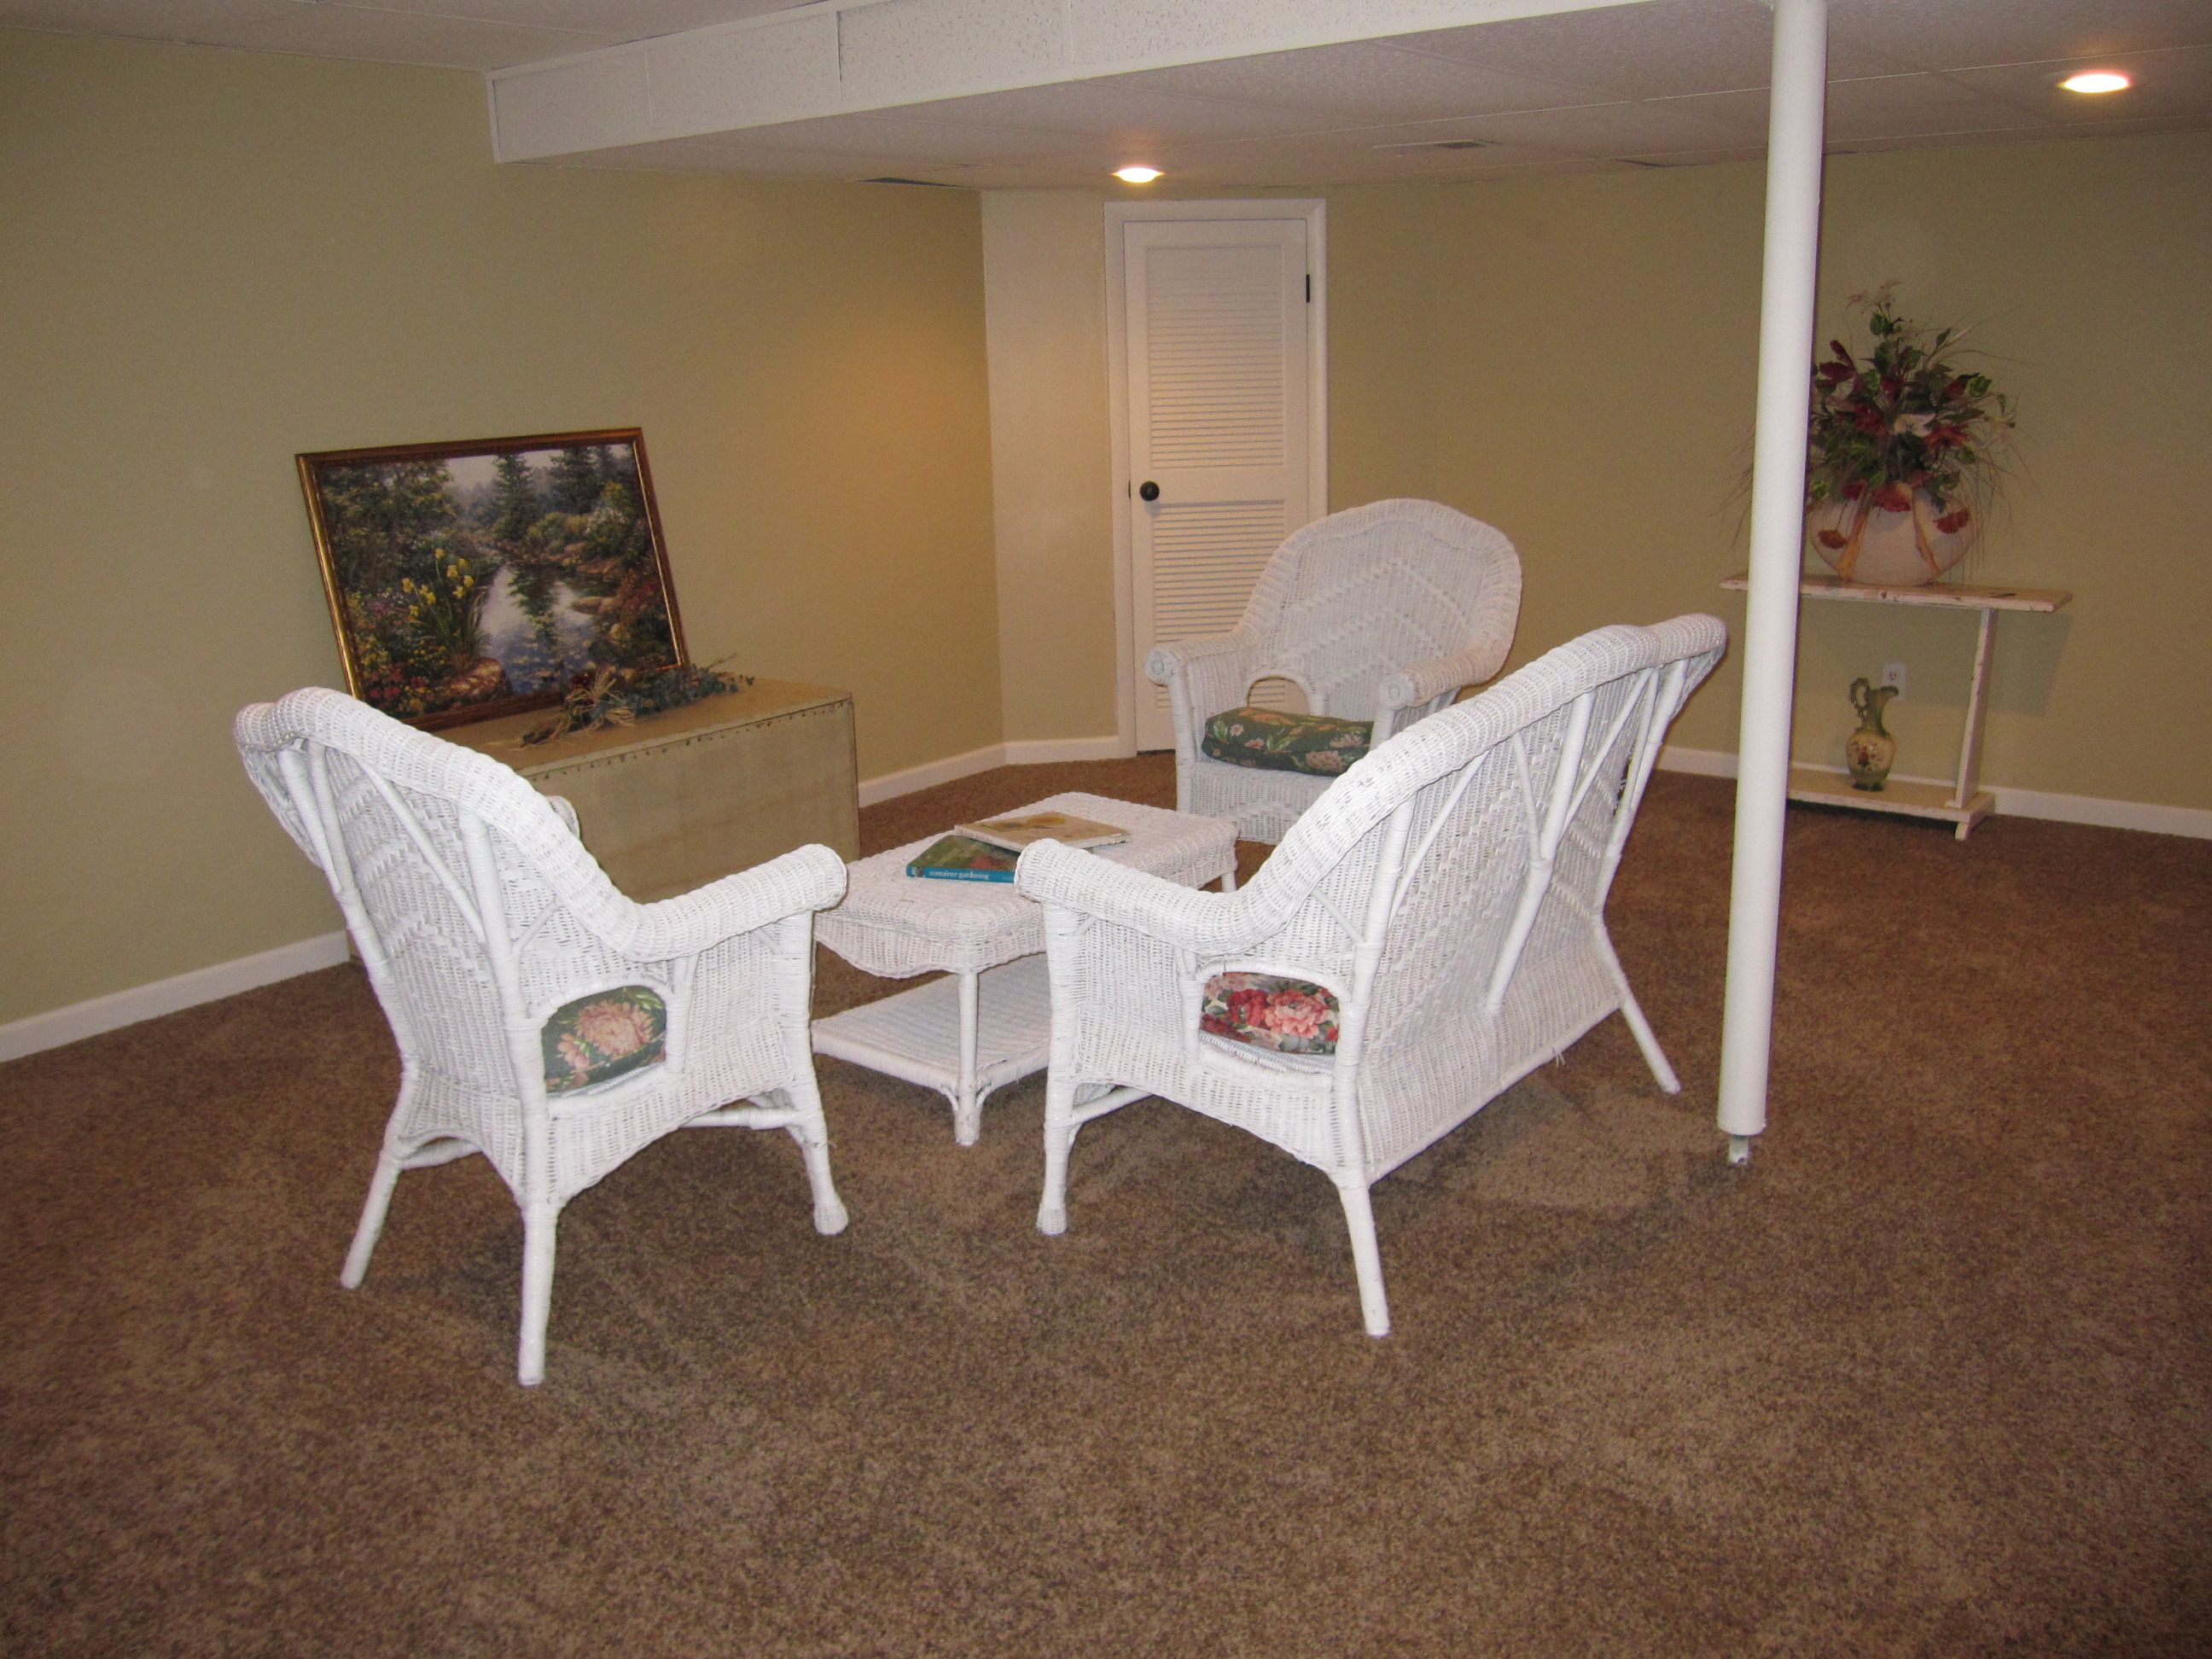 renovation design garden reasons and ideas home after furniture remodeling to your renovate basement toledo